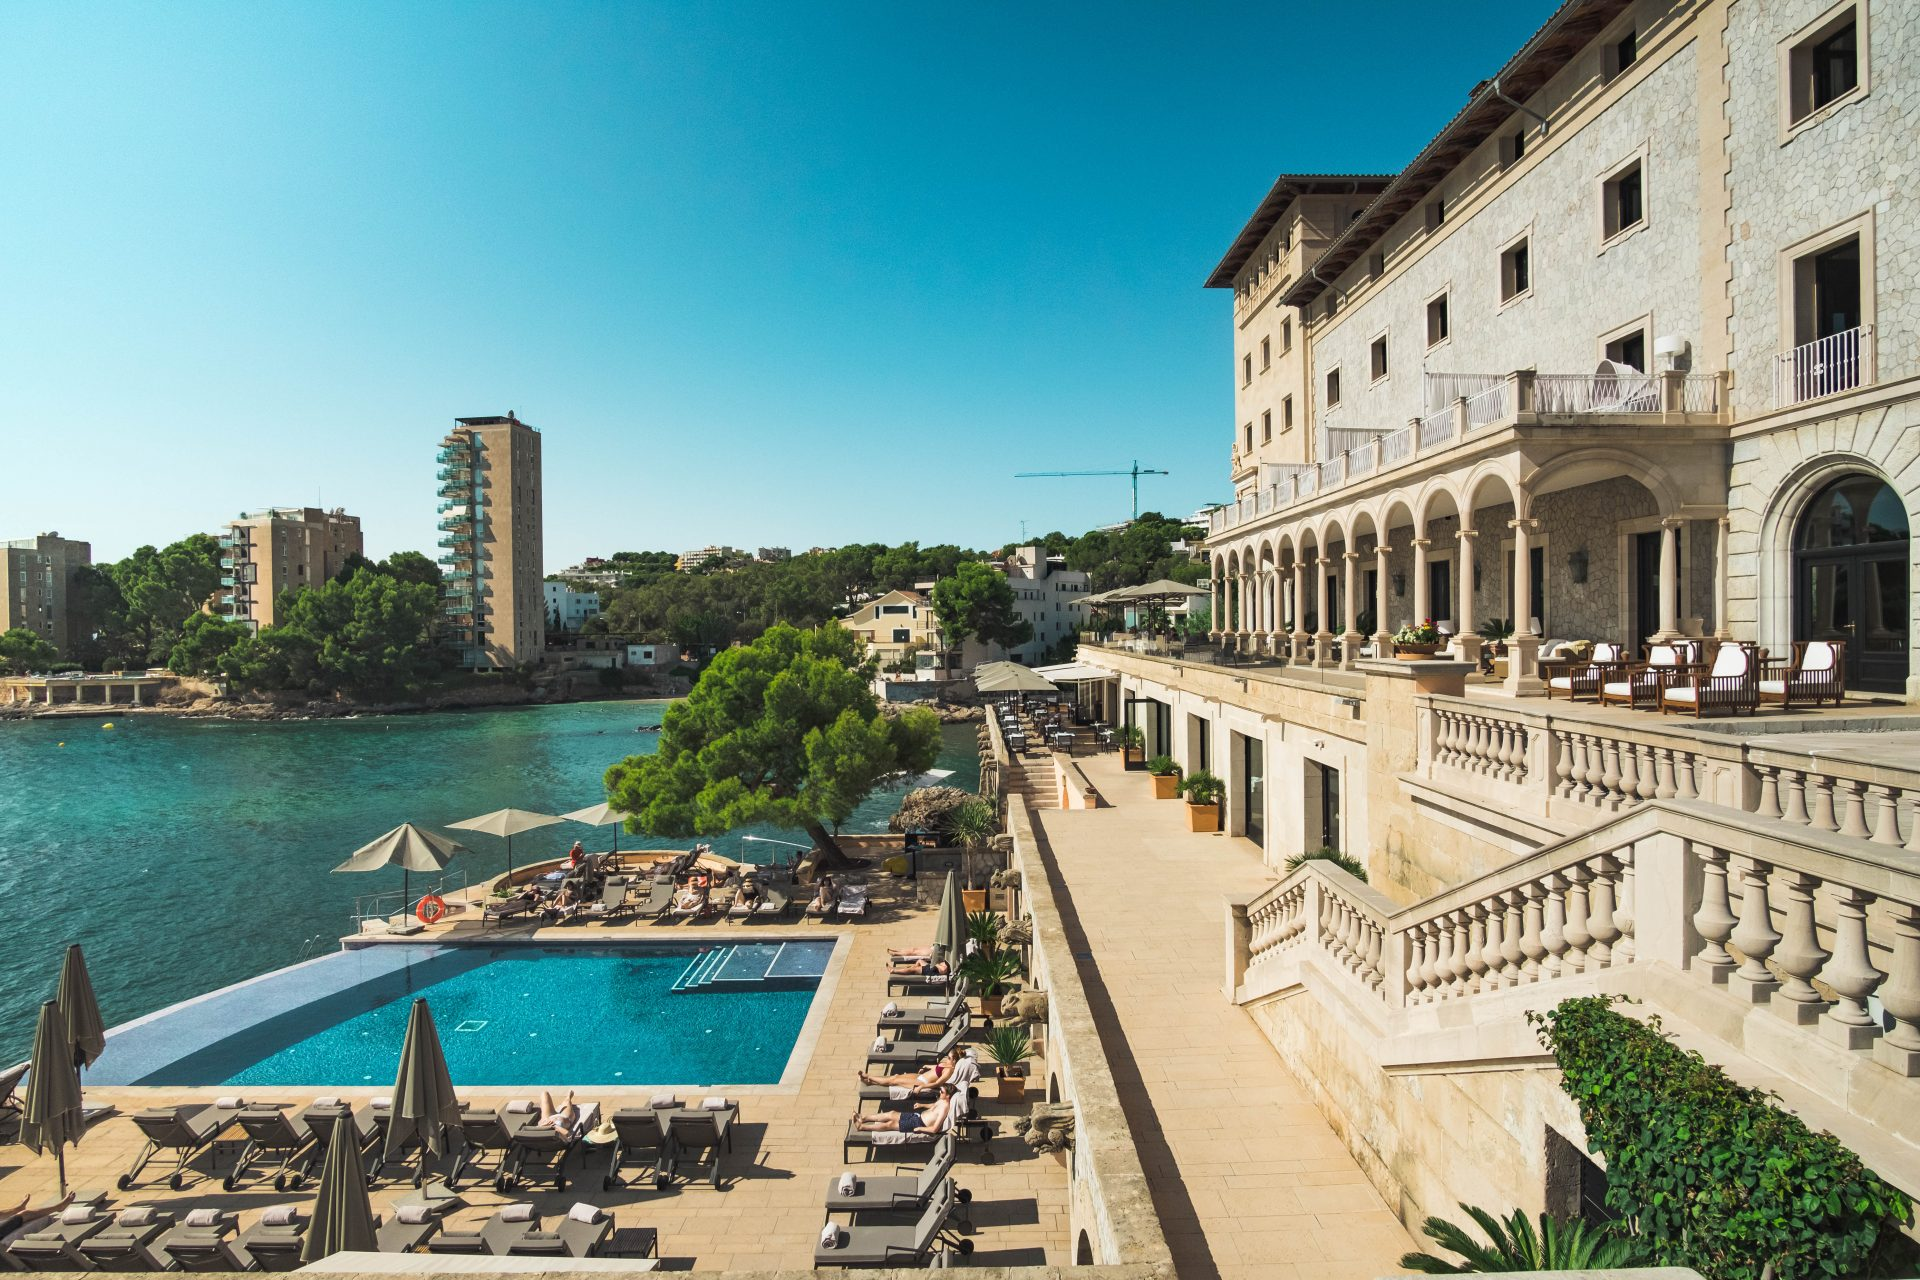 Pool and Facade of the Hospes Hotel Maricel Mallorca overlooking the sea photo by Jo Kassis